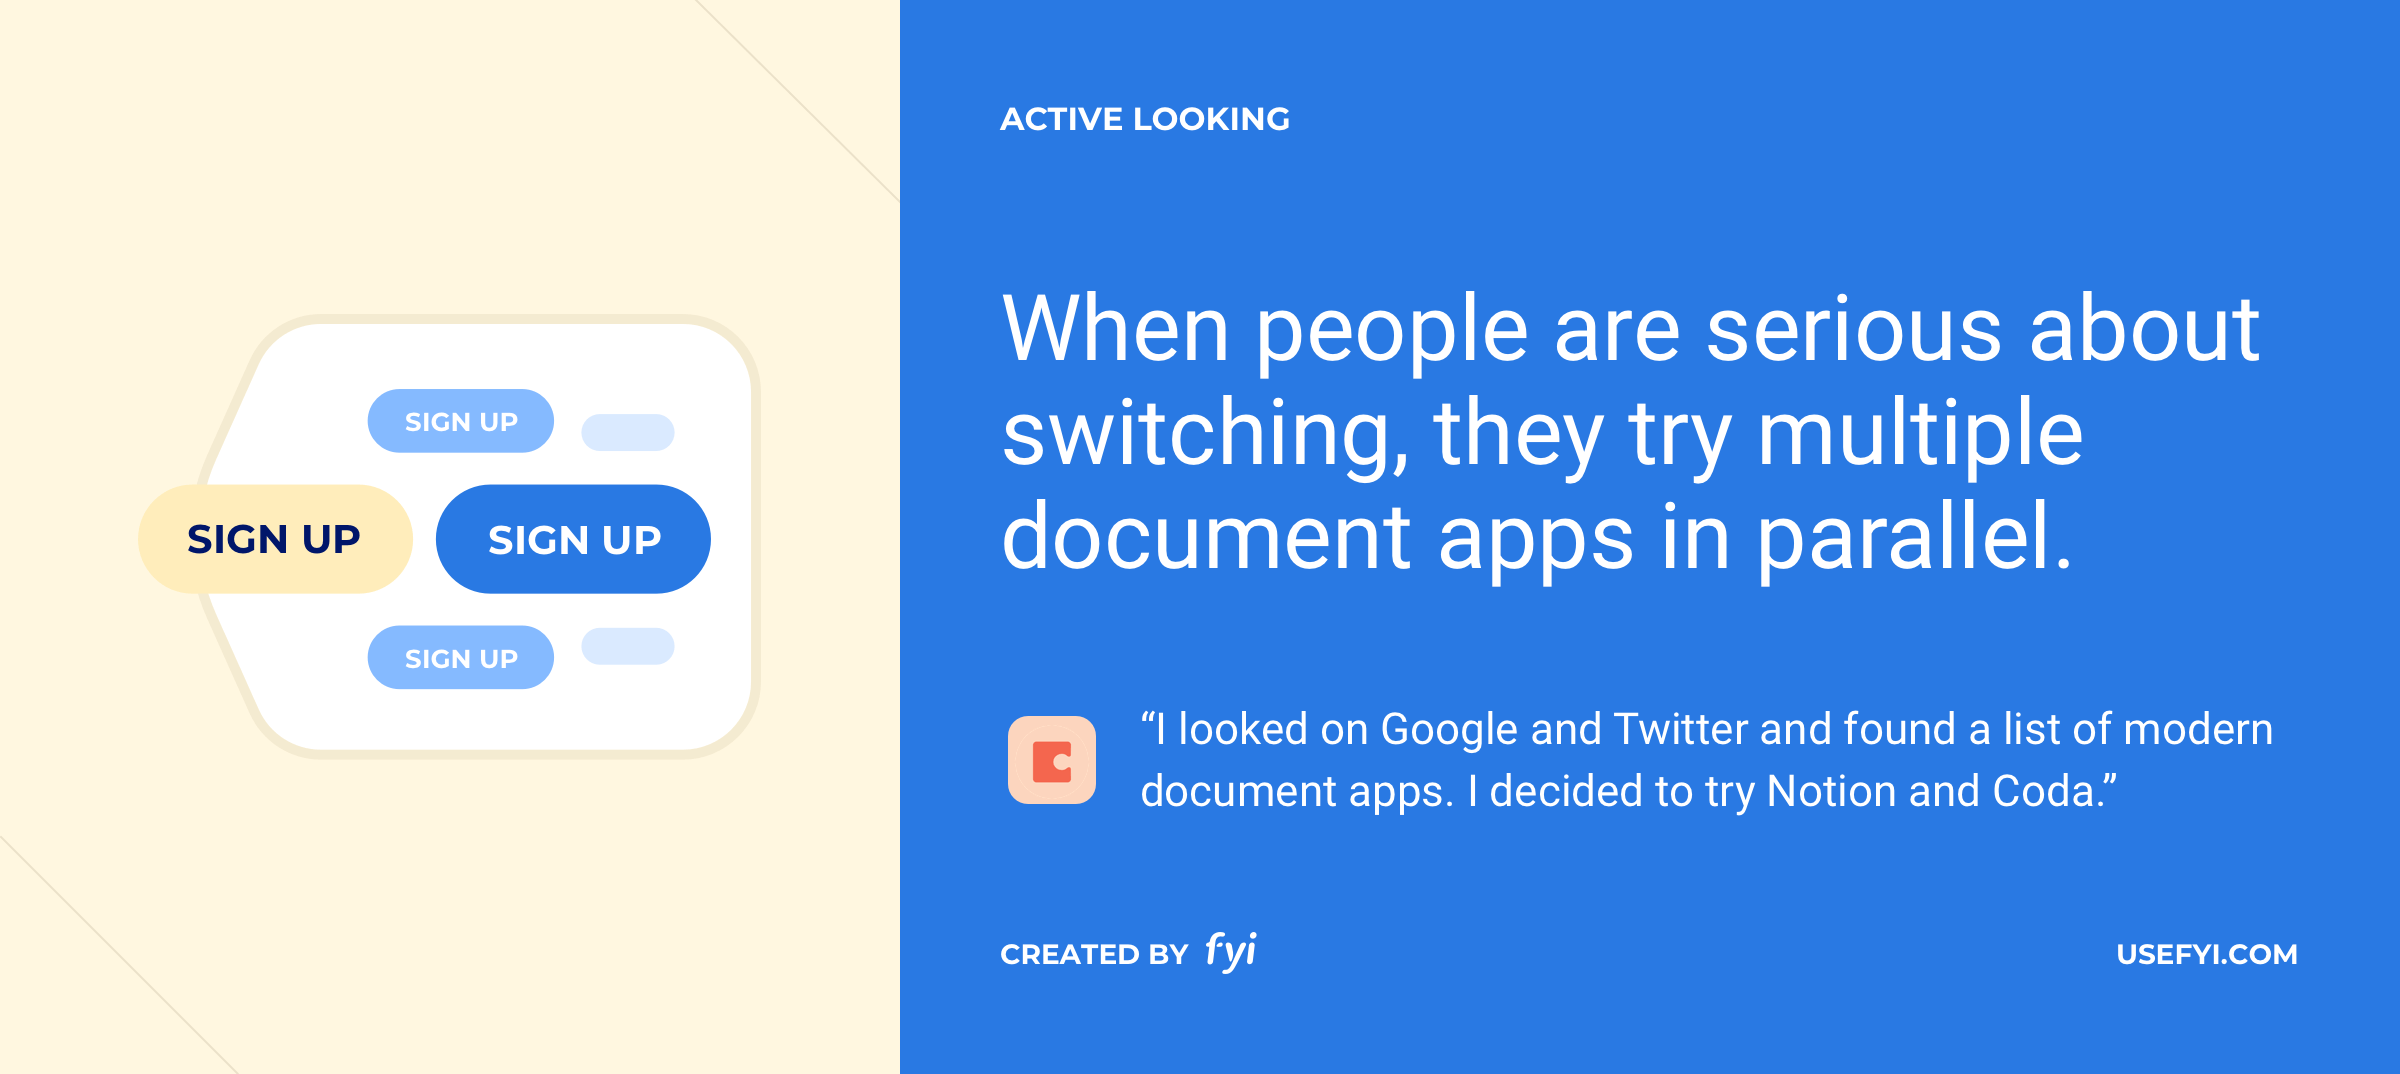 actively looking for document apps